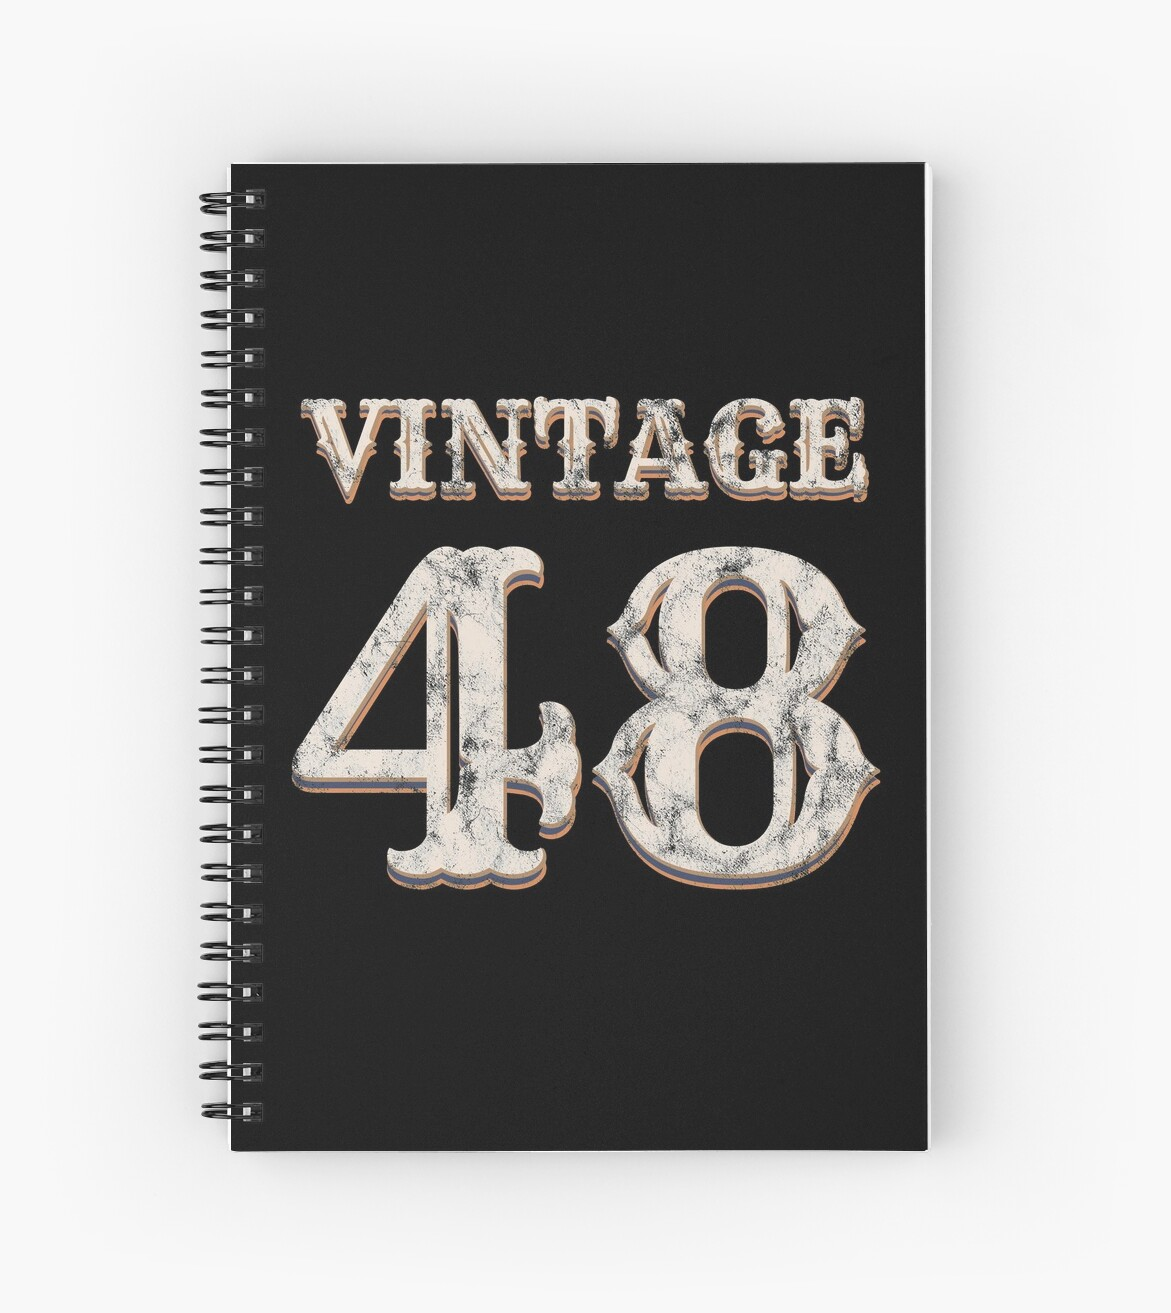 Vintage 48 Tshirt 70th Birthday Gift For 70 Year Old